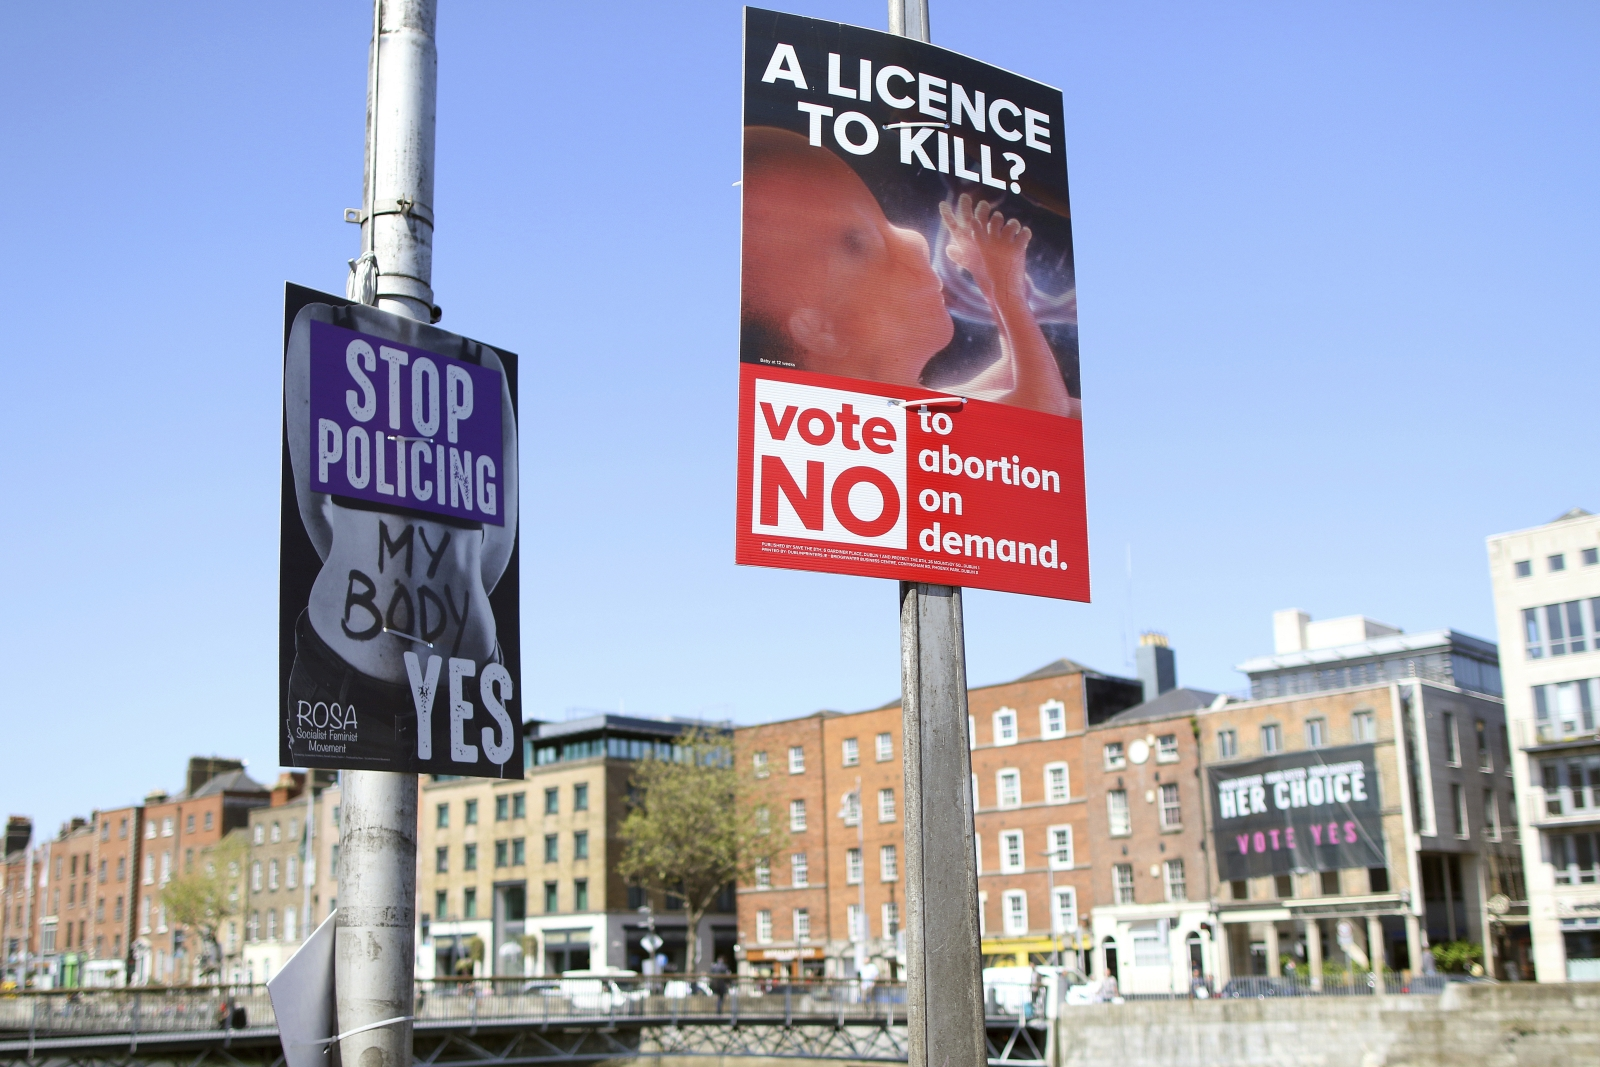 In this photo taken on May 17, 2018, pro and anti-abortion poster's on lampposts, in Dublin, Ireland. In homes and pubs, on leaflets and lampposts, debate rages in Ireland over whether to lift the country's decades-old ban on abortion. Pro-repeal banners declare: 'Her choice: vote yes.' Anti-abortion placards warn against a 'license to kill.' Online, the argument is just as charged _ and more shadowy _ as unregulated ads of uncertain origin battle to sway voters ahead of Friday's referendum, which could give Irish women the right to end their pregnancies for the first time. The emotive campaign took a twist this month when Facebook and Google look last-minute decisions to restrict or remove ads relating to the abortion vote. It is the latest response to global concern about social media's role in influencing political campaigns for the U.S. presidency and Brexit. (AP Photo/Peter Morrison)